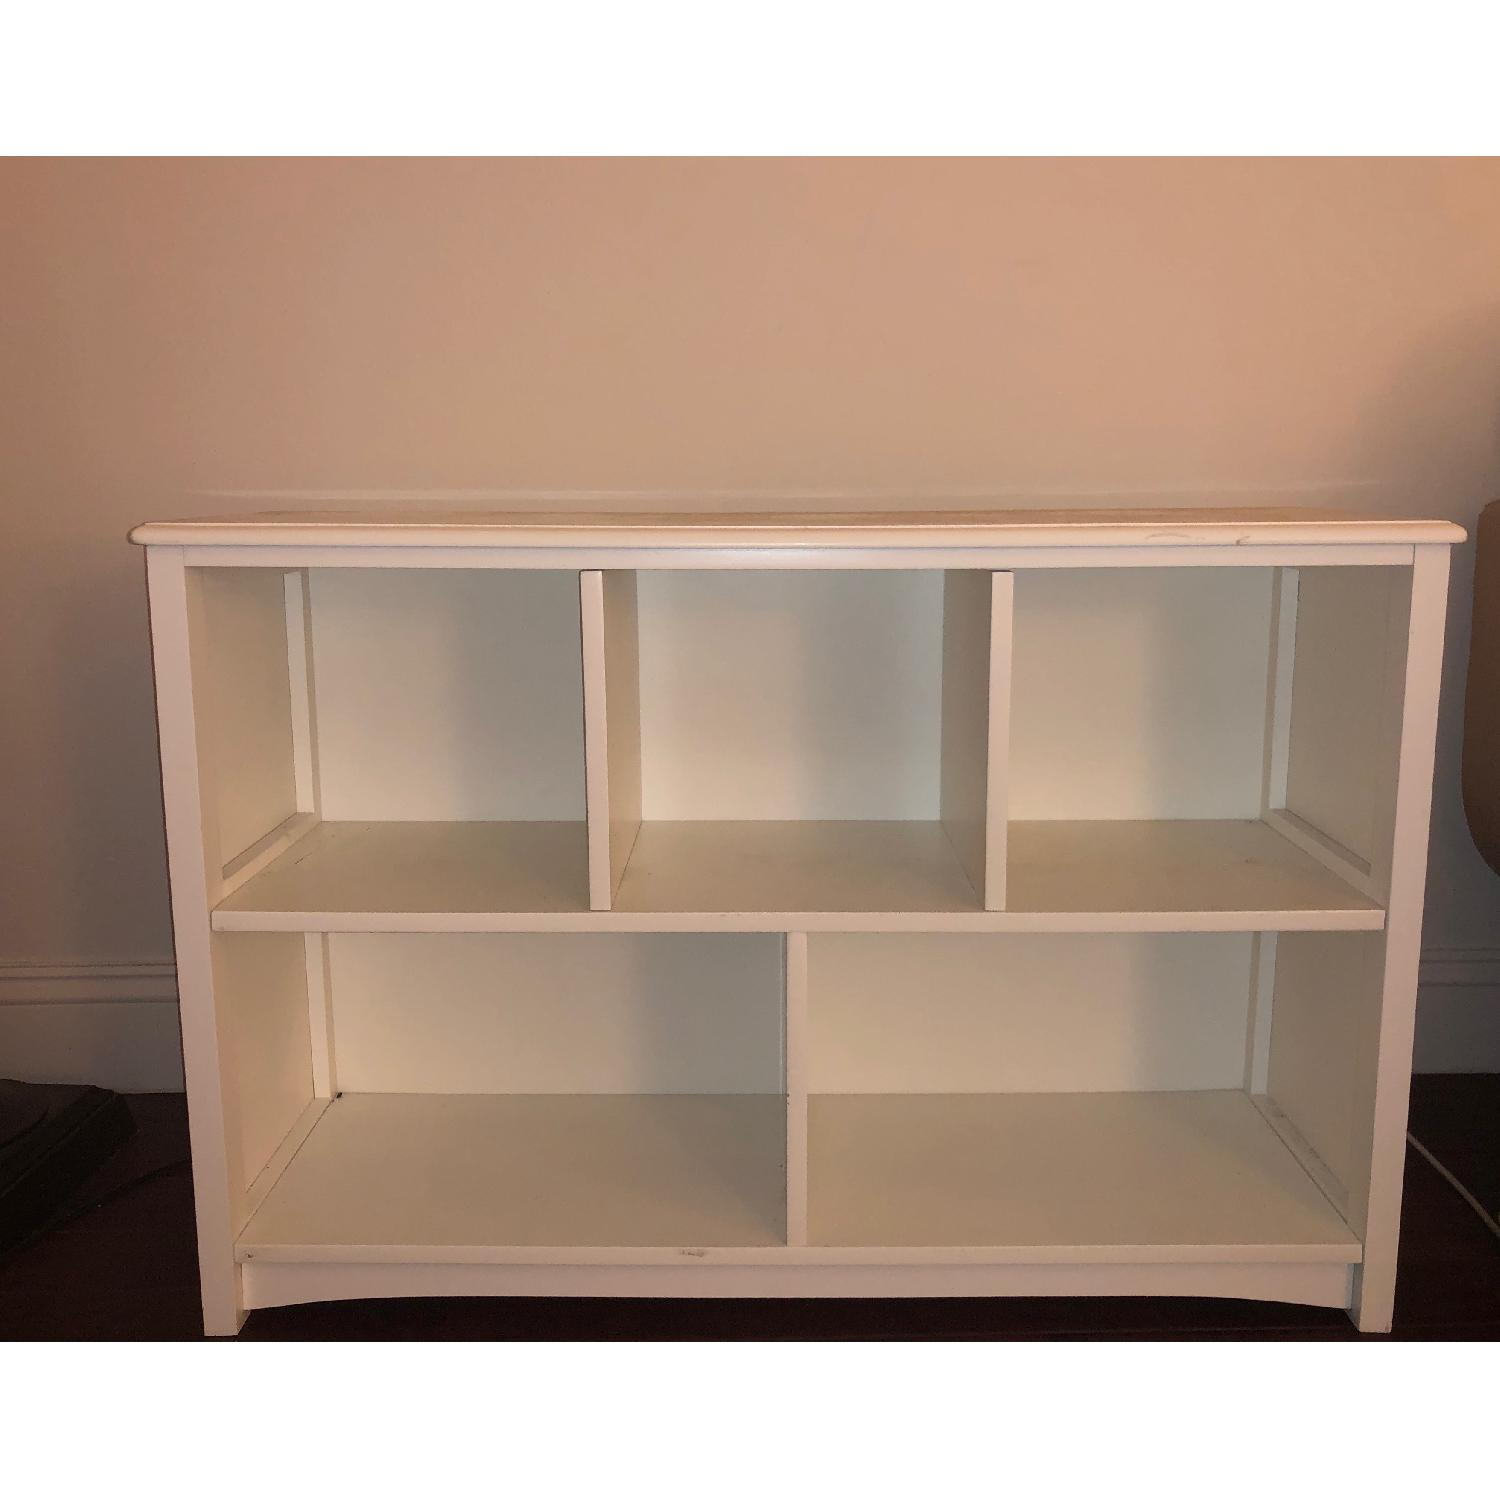 Low Bookcase in Simply White-2